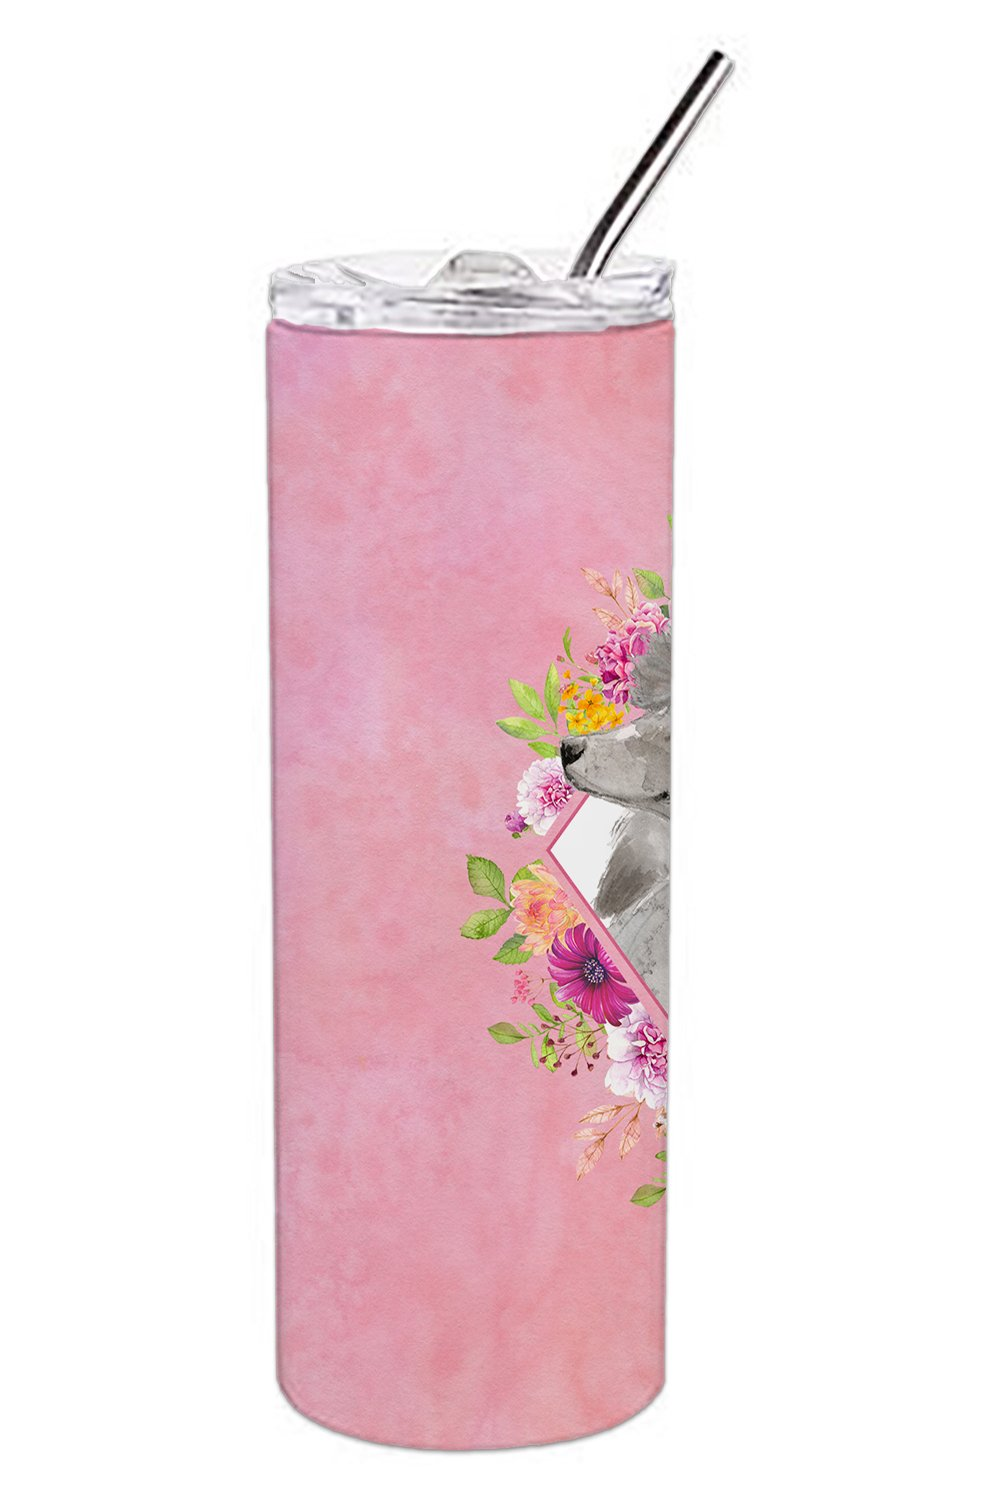 Grey Standard Poodle Pink Flowers Double Walled Stainless Steel 20 oz Skinny Tumbler CK4233TBL20 by Caroline's Treasures